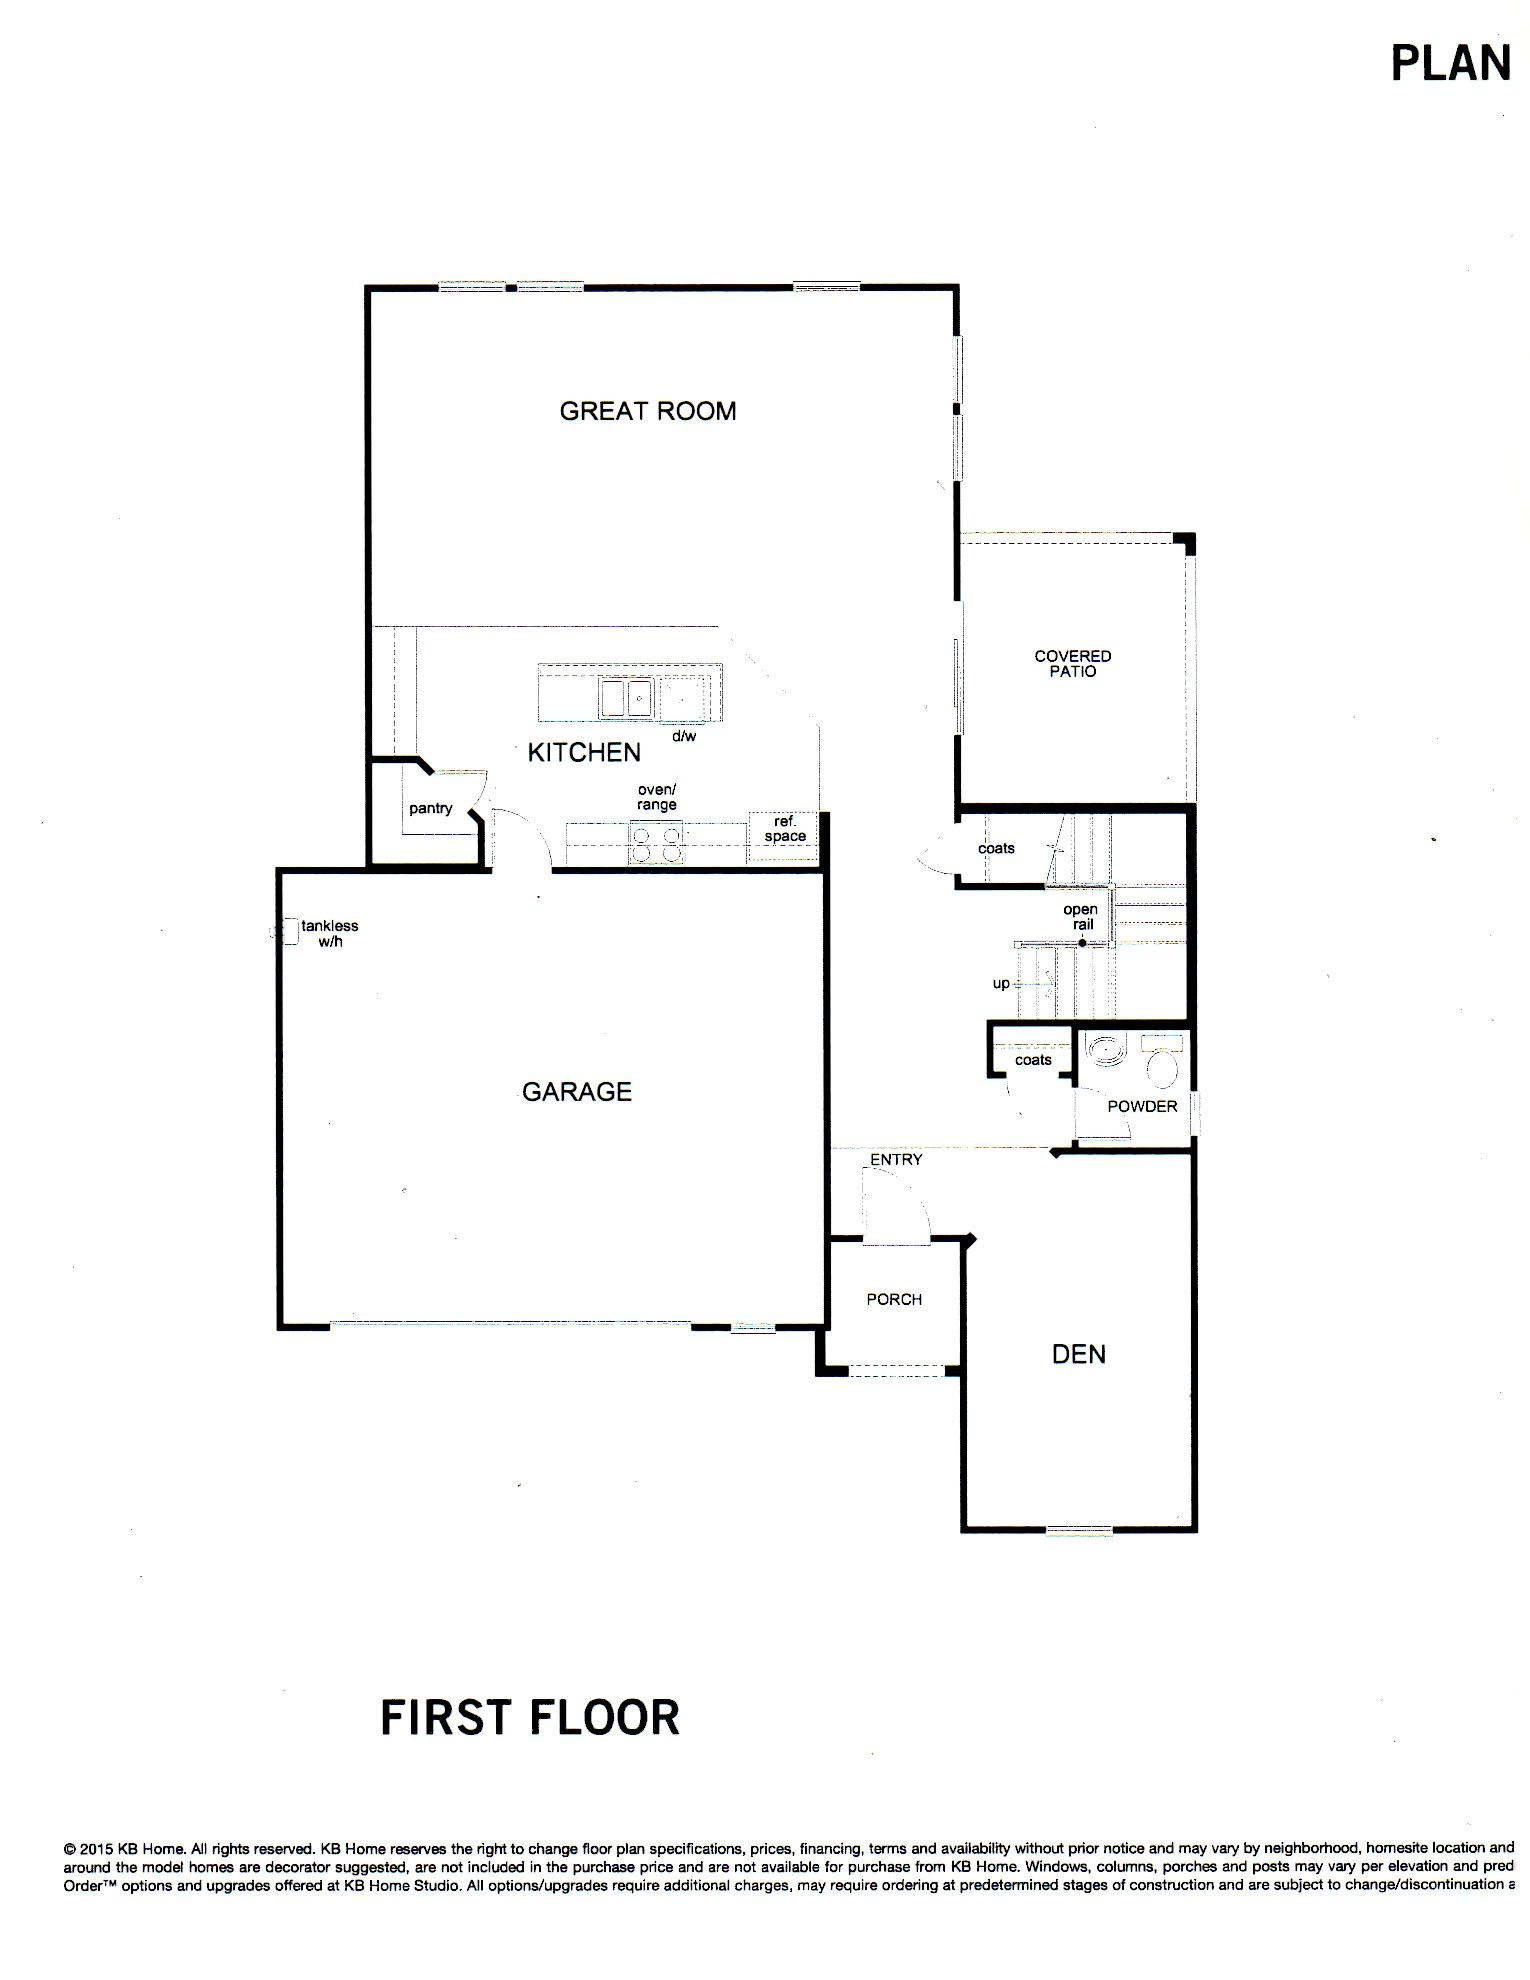 PLAN 2537 -- Two Level Home